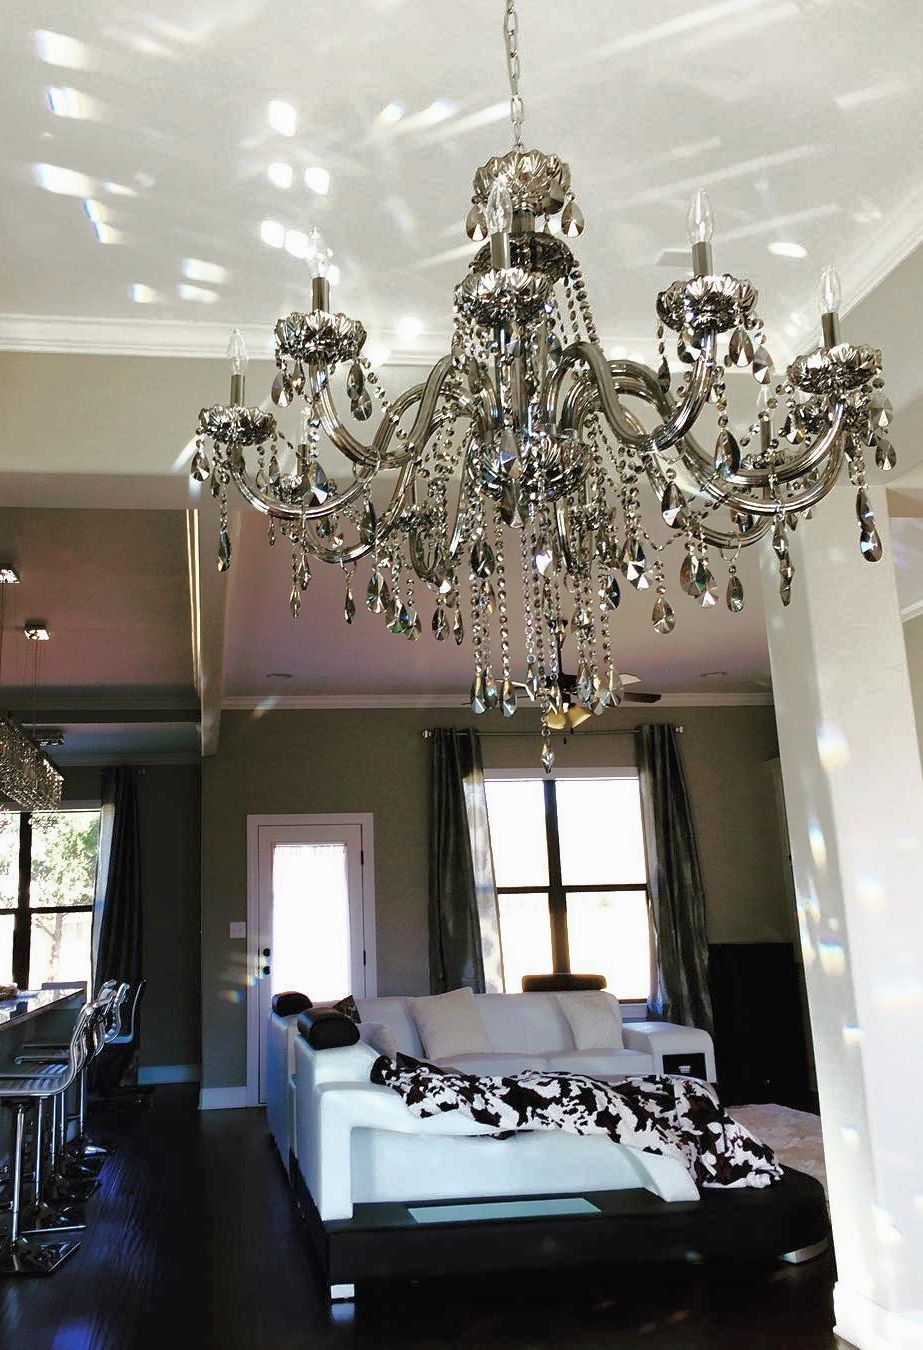 Make A Grand Appearance With The Premier Crystal Omni Chandelier From Z Gallerie